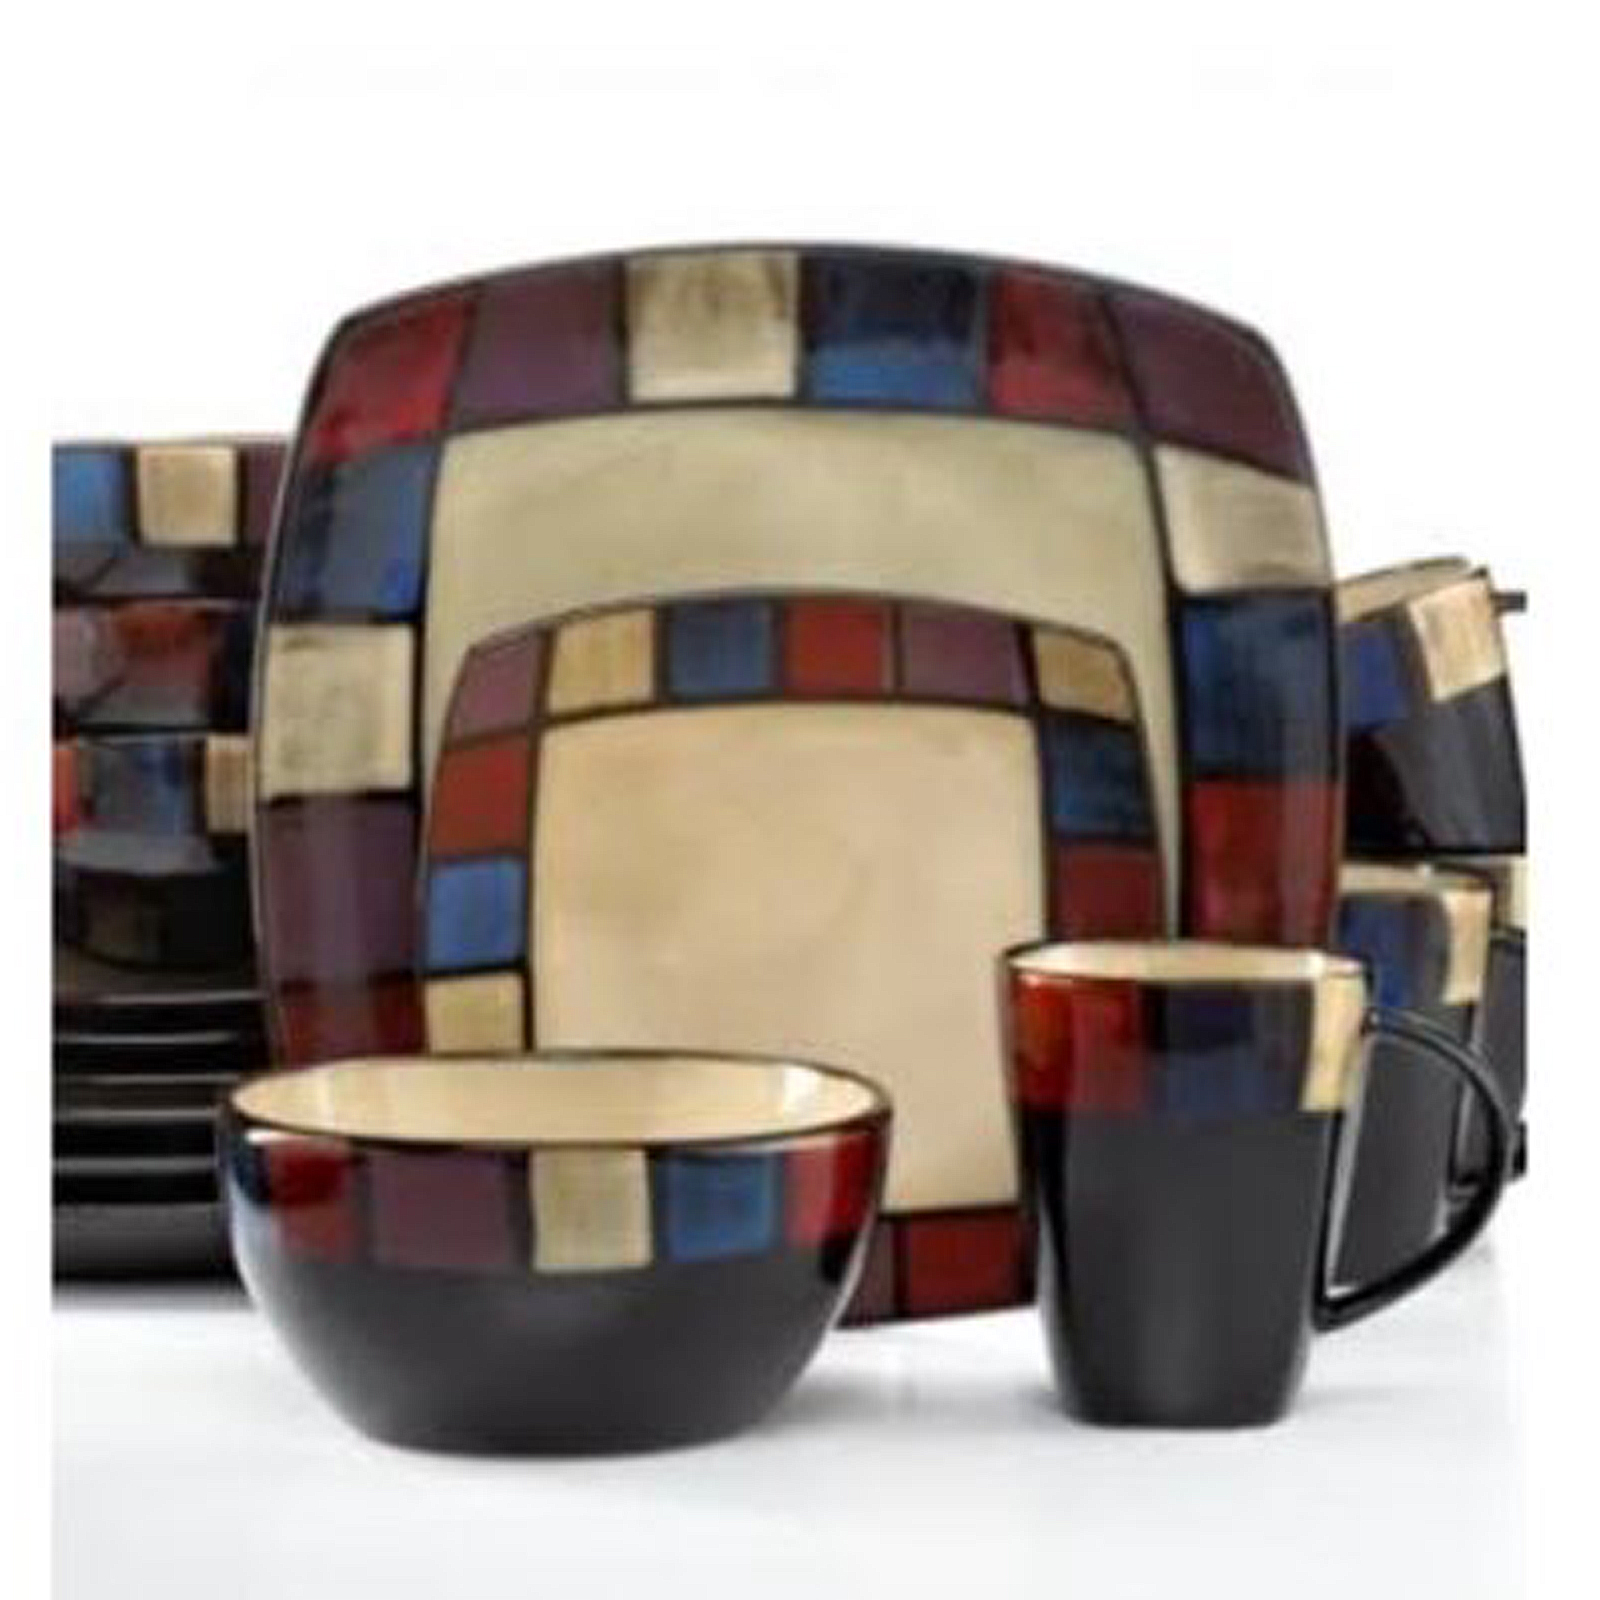 Gibson Soho Lounge 16 Piece Soft Square Reactive Glaze Dinnerware Set in Mosaic